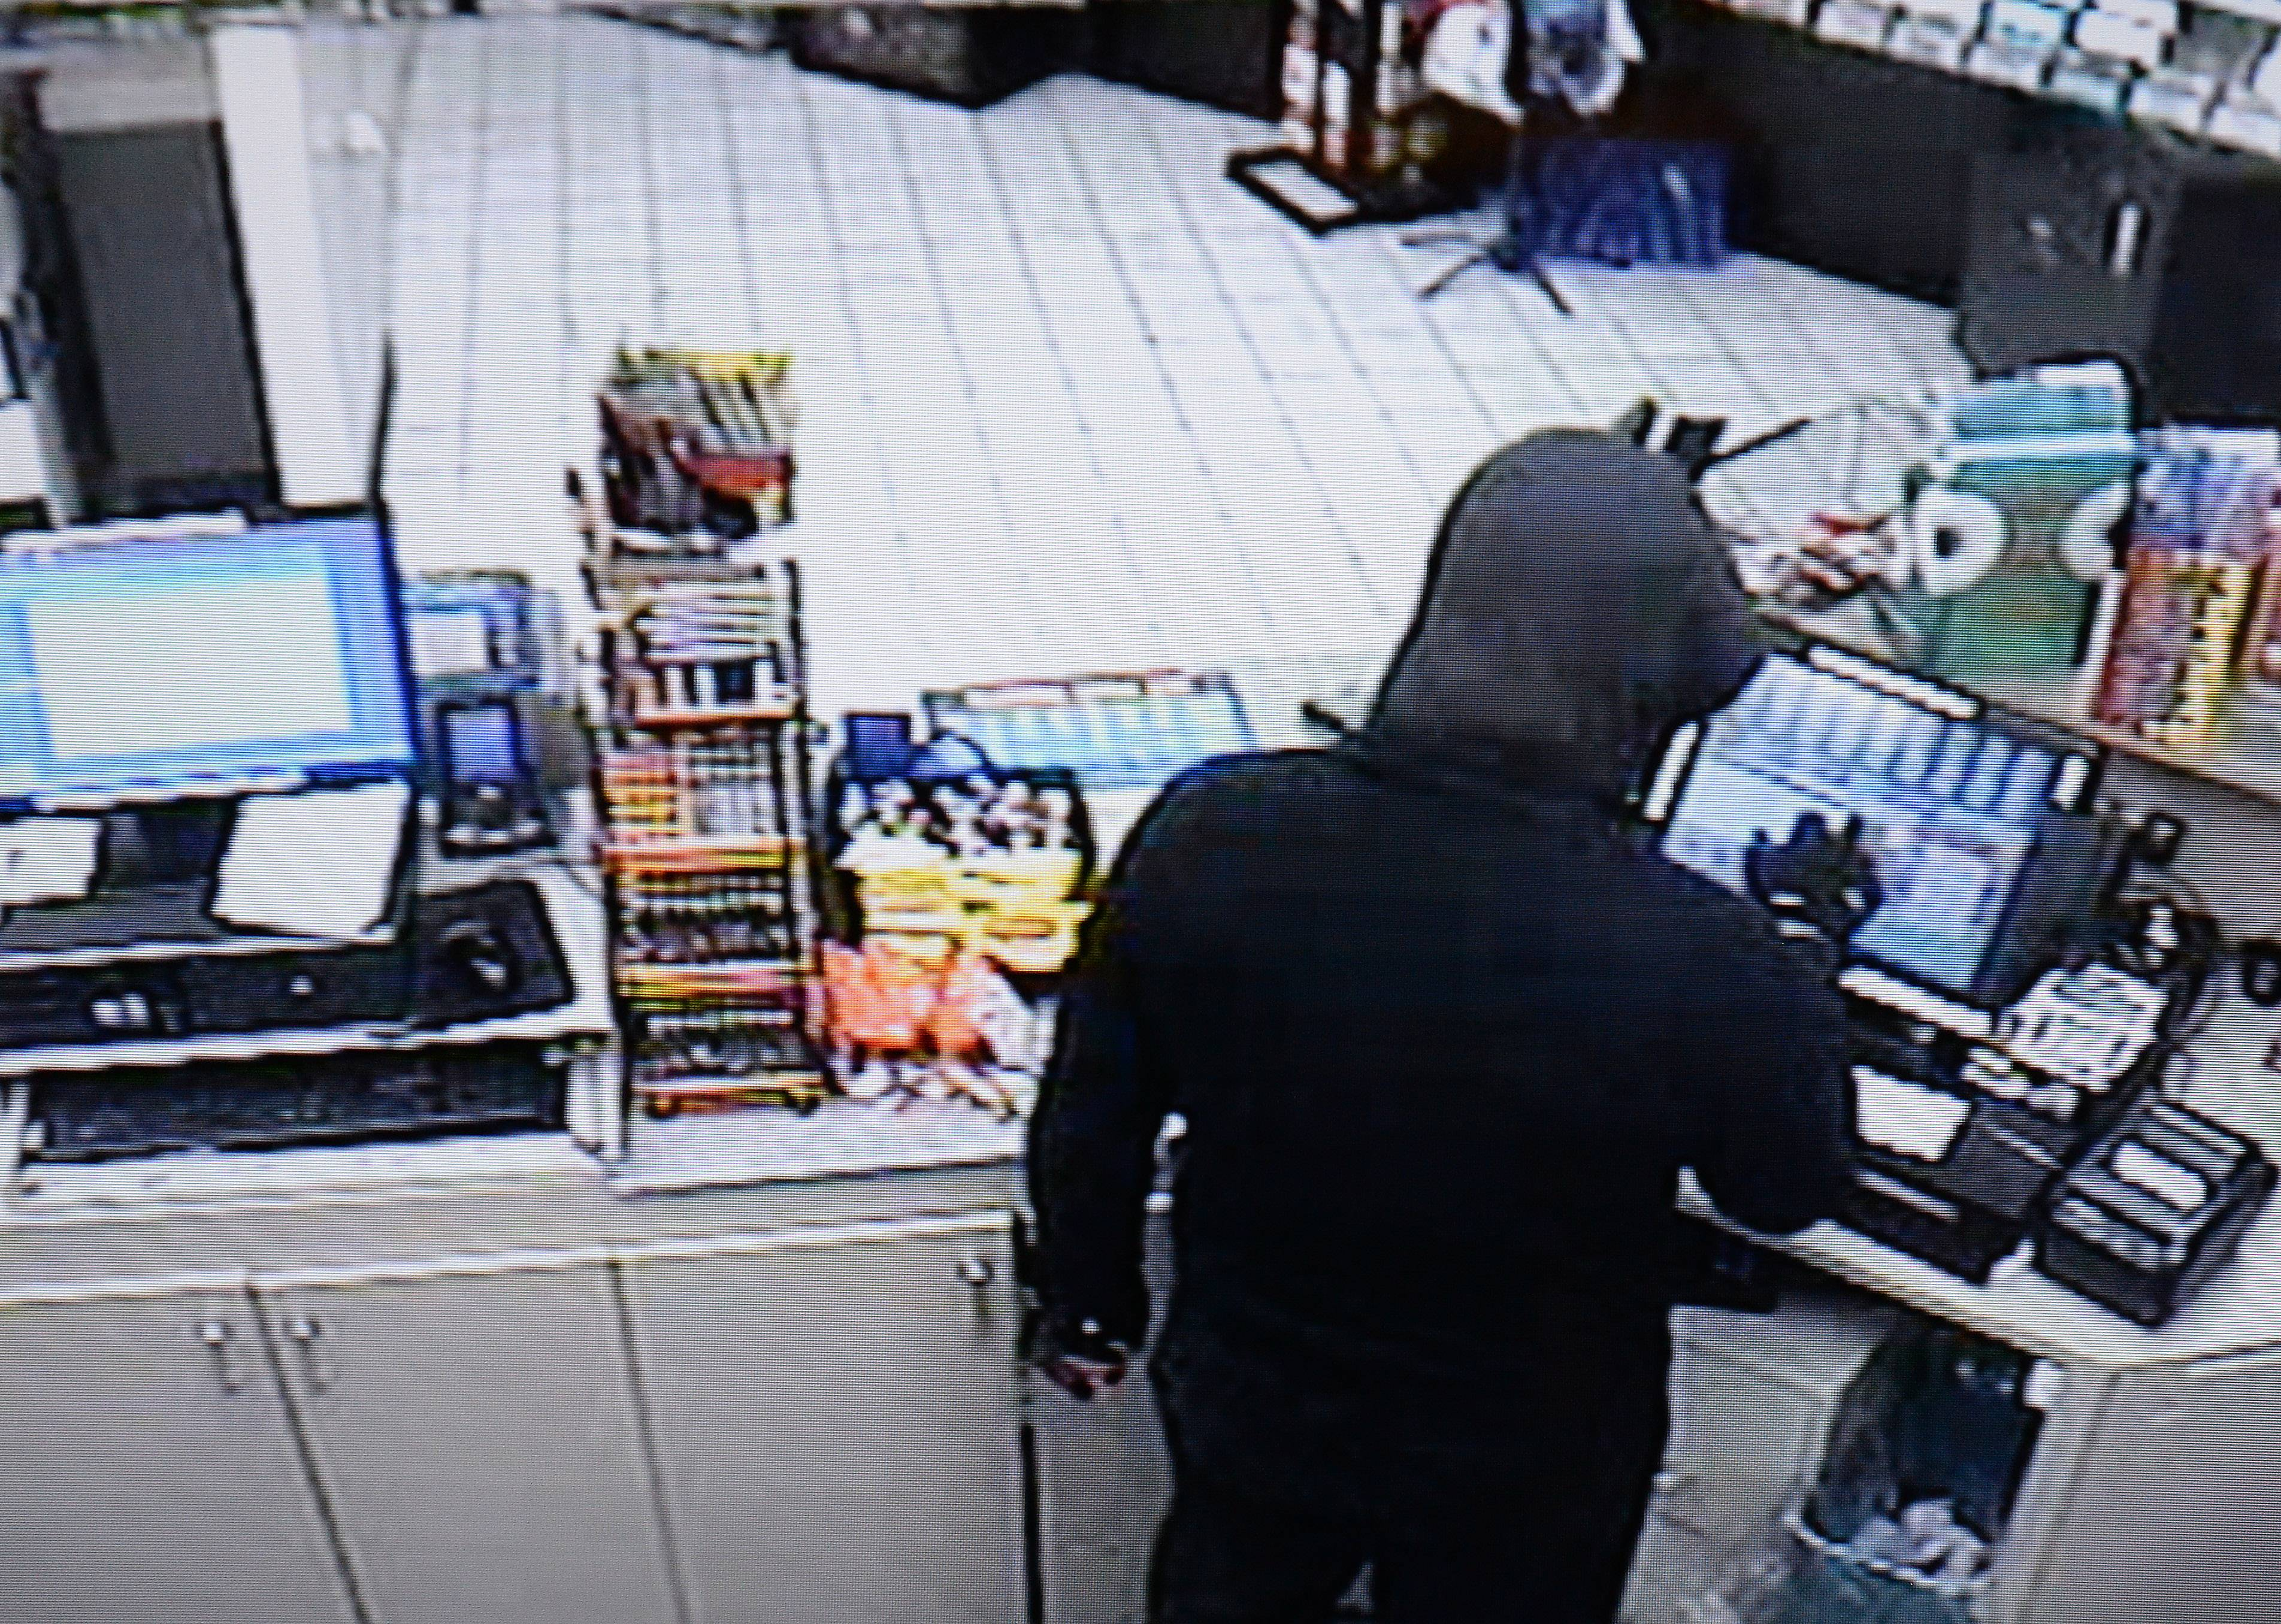 Police say the suspect in the March 2013 slaying of a Streamwood gas station attendant went to great lengths to avoid detection, wearing wore a hood, mask and gloves during the crime. Police released new surveillance video of the man Tuesday.